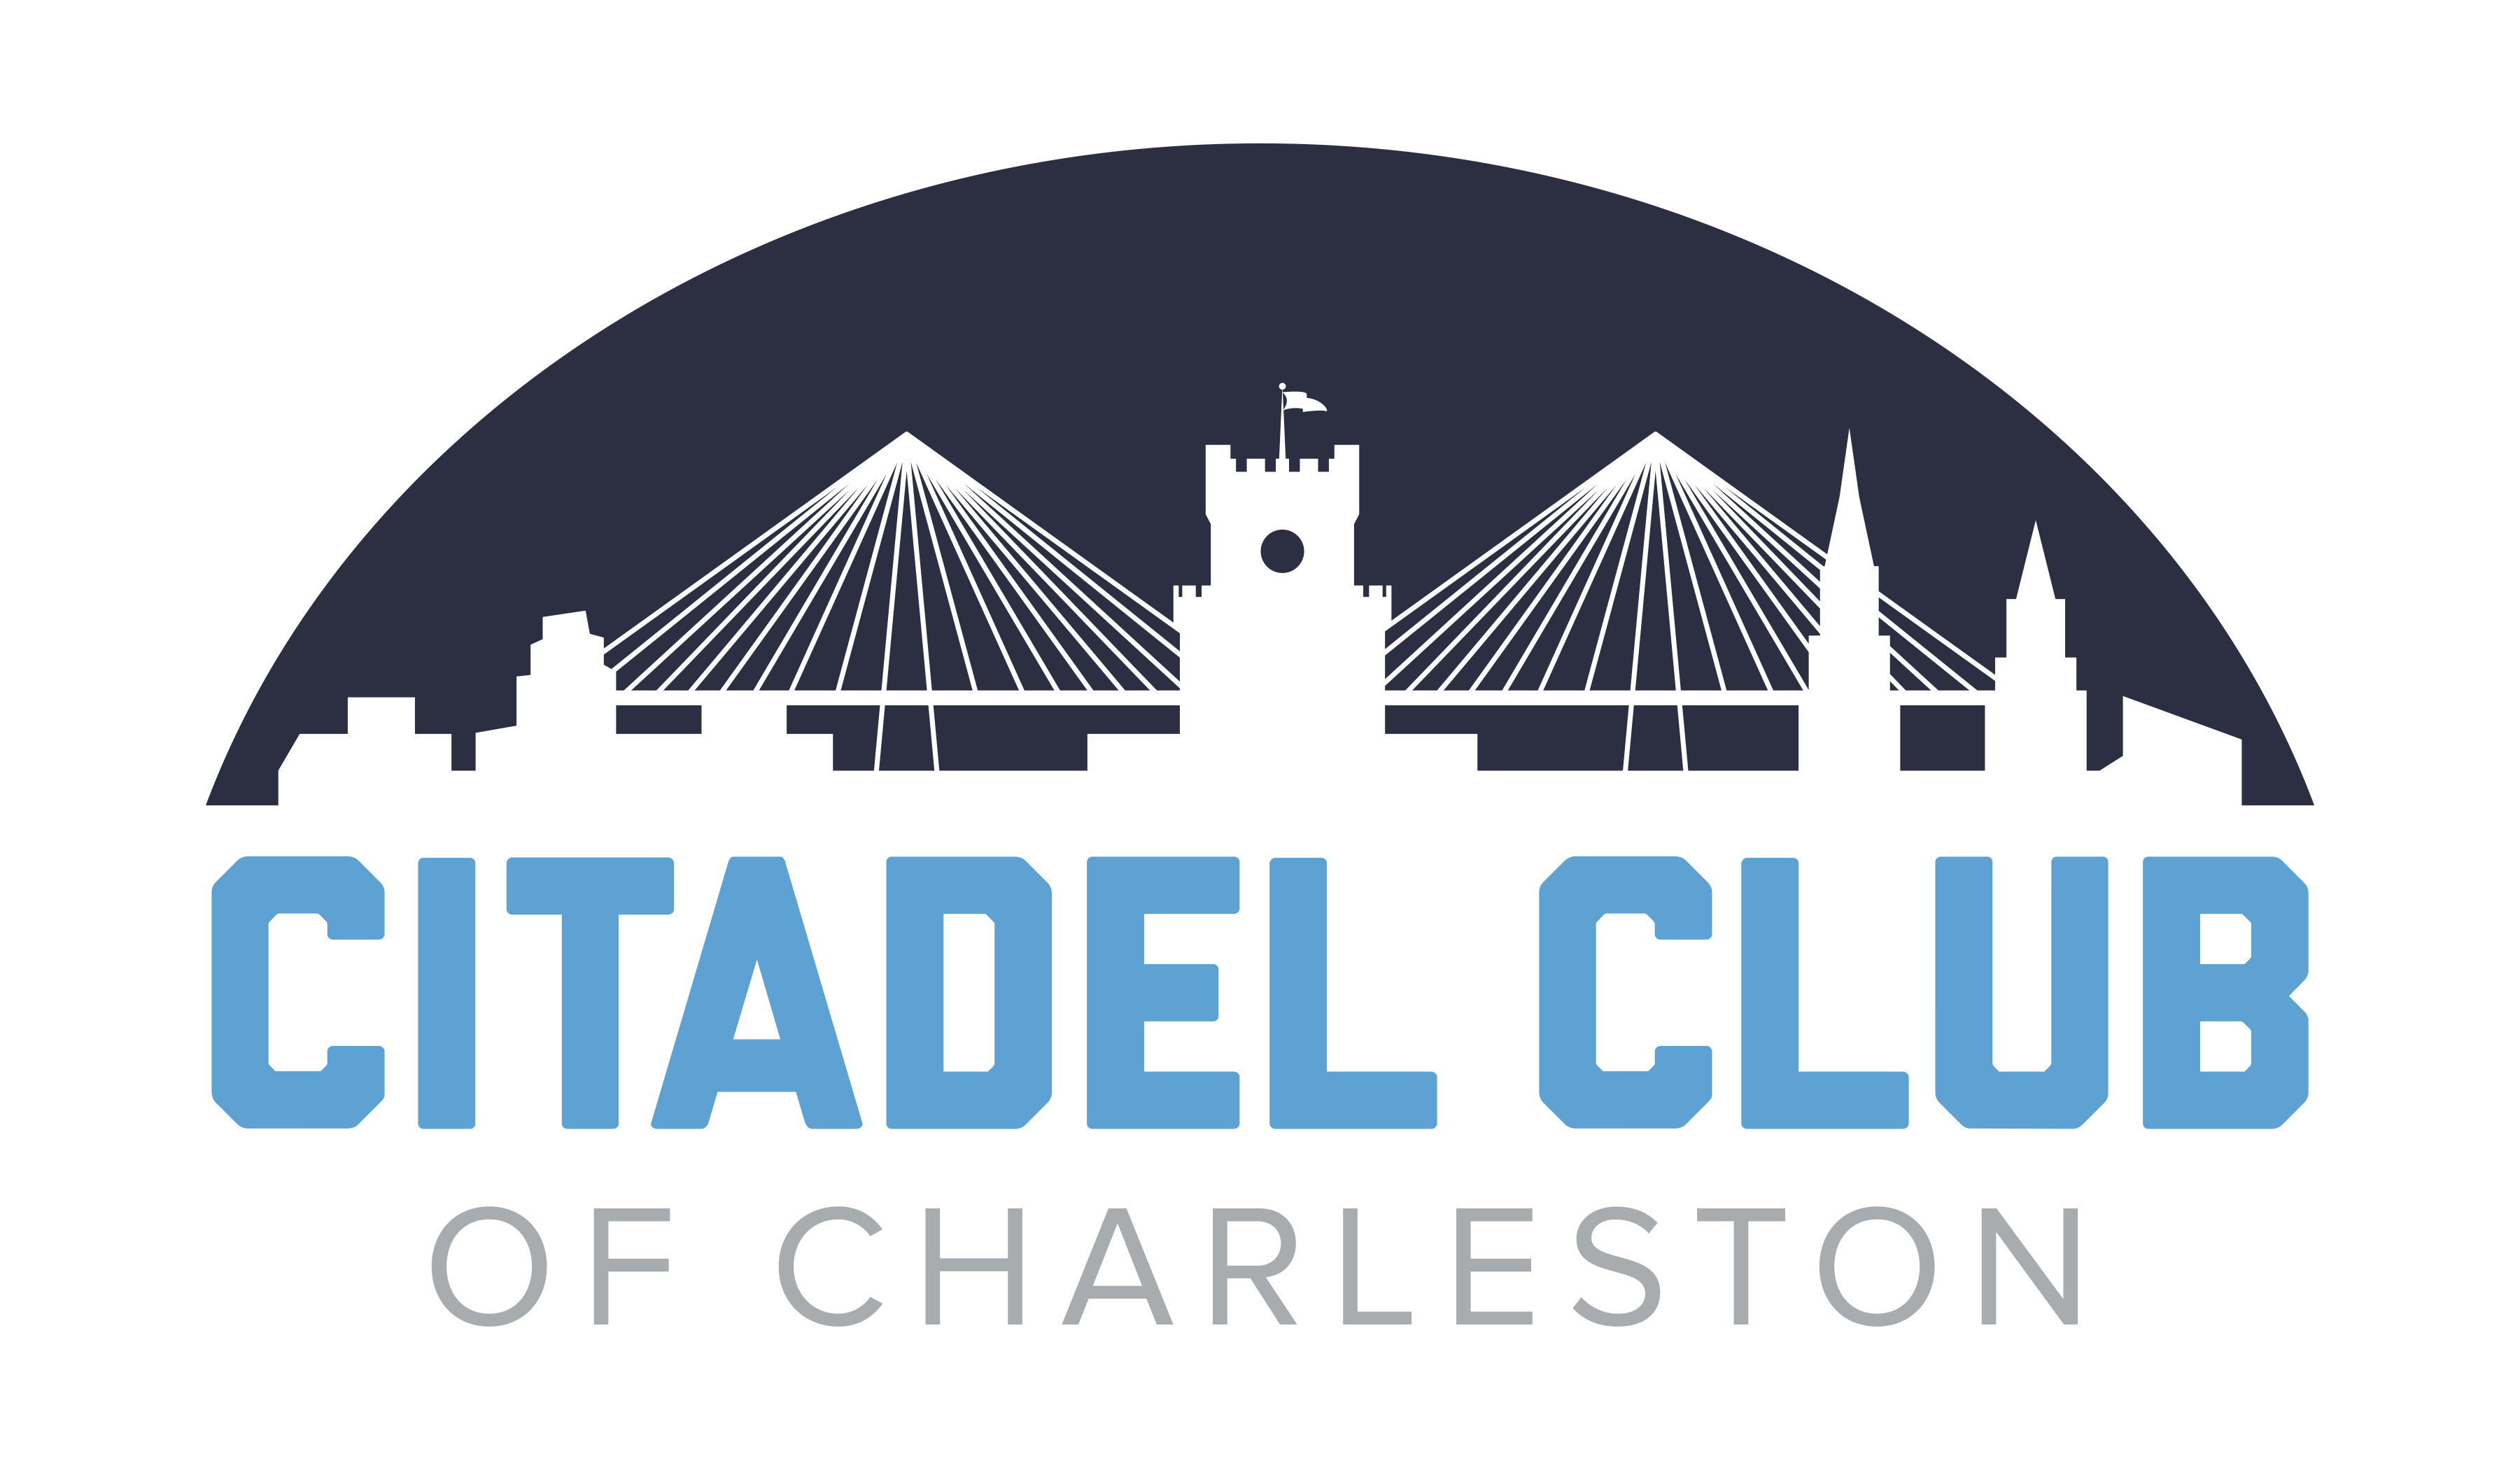 The citadel club of charleston about us malvernweather Images